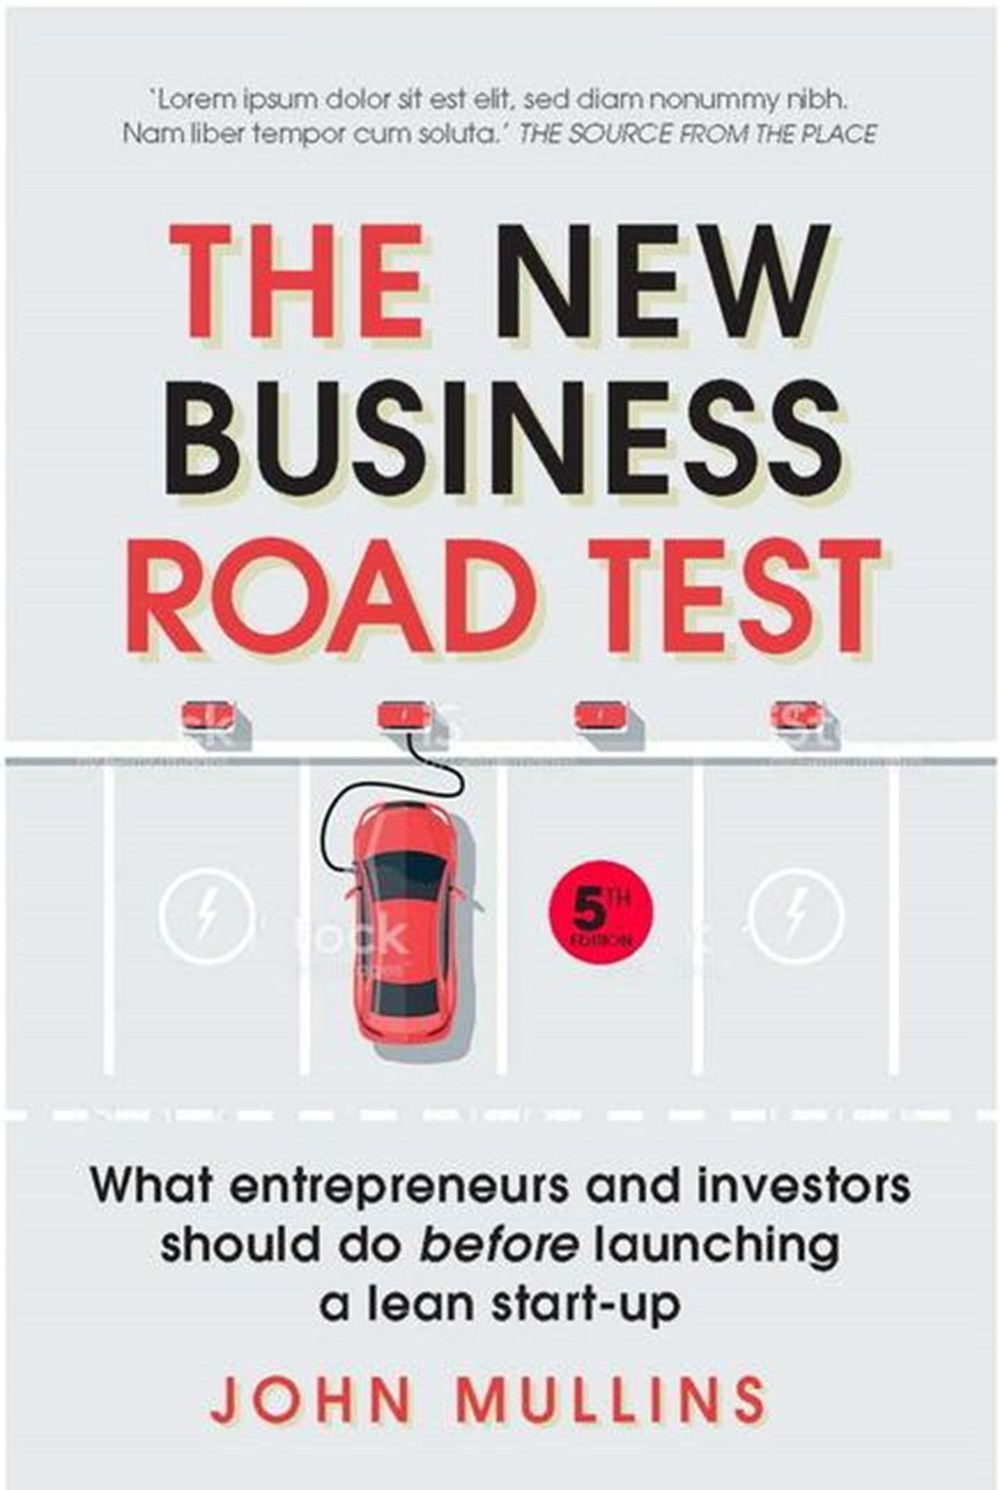 New Business Road Test What Entrepreneurs and Investors Should Do Before Launching a Lean Start-Up